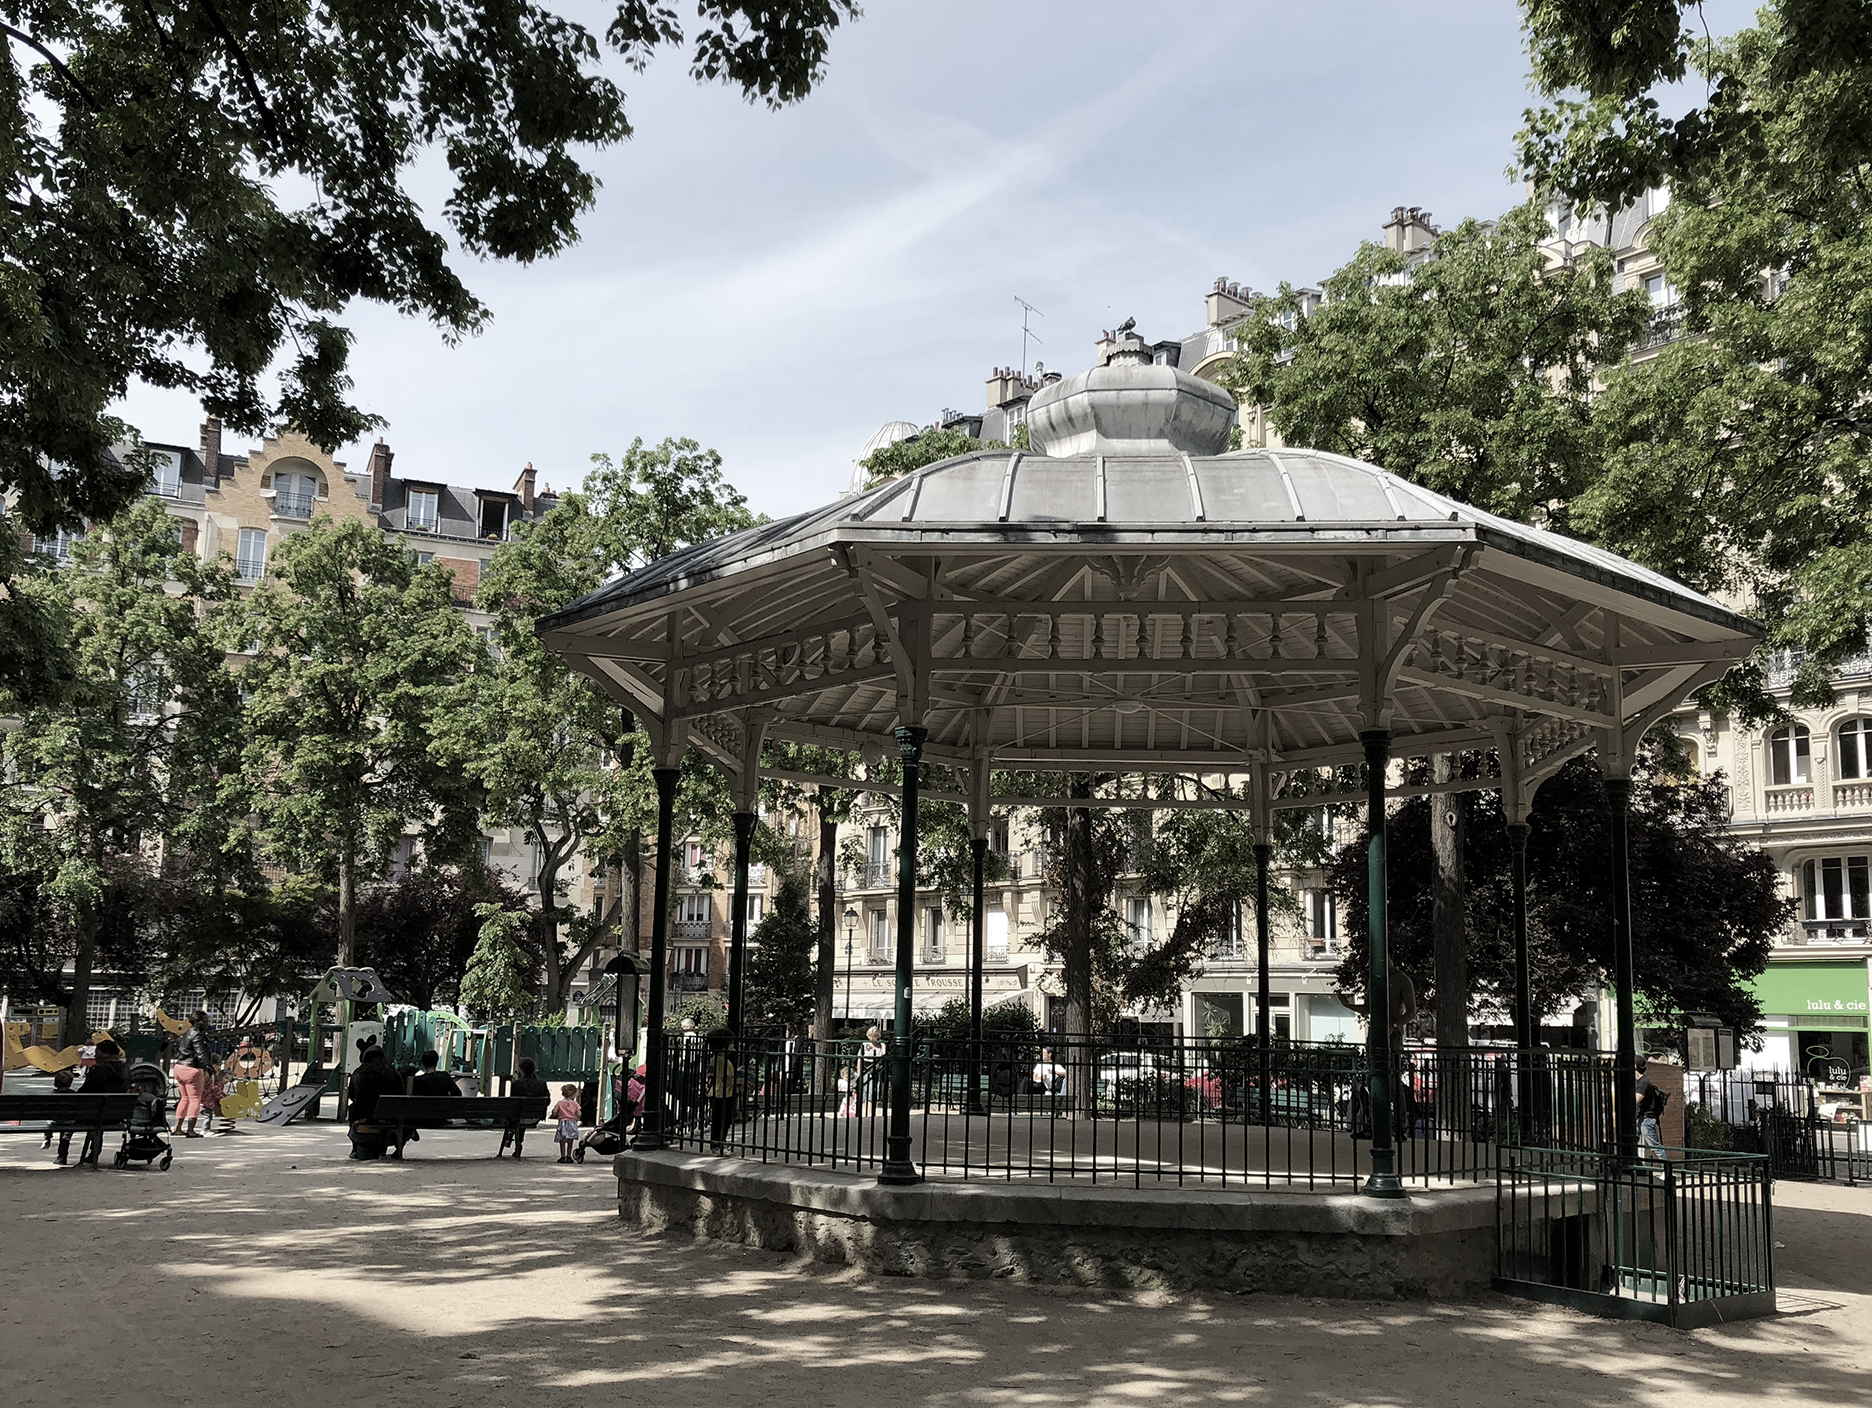 Square Trousseau just off the busy street. Haussmannian buildings on the other three sides. Classic music kiosk and playground for children. A locals' favorite.